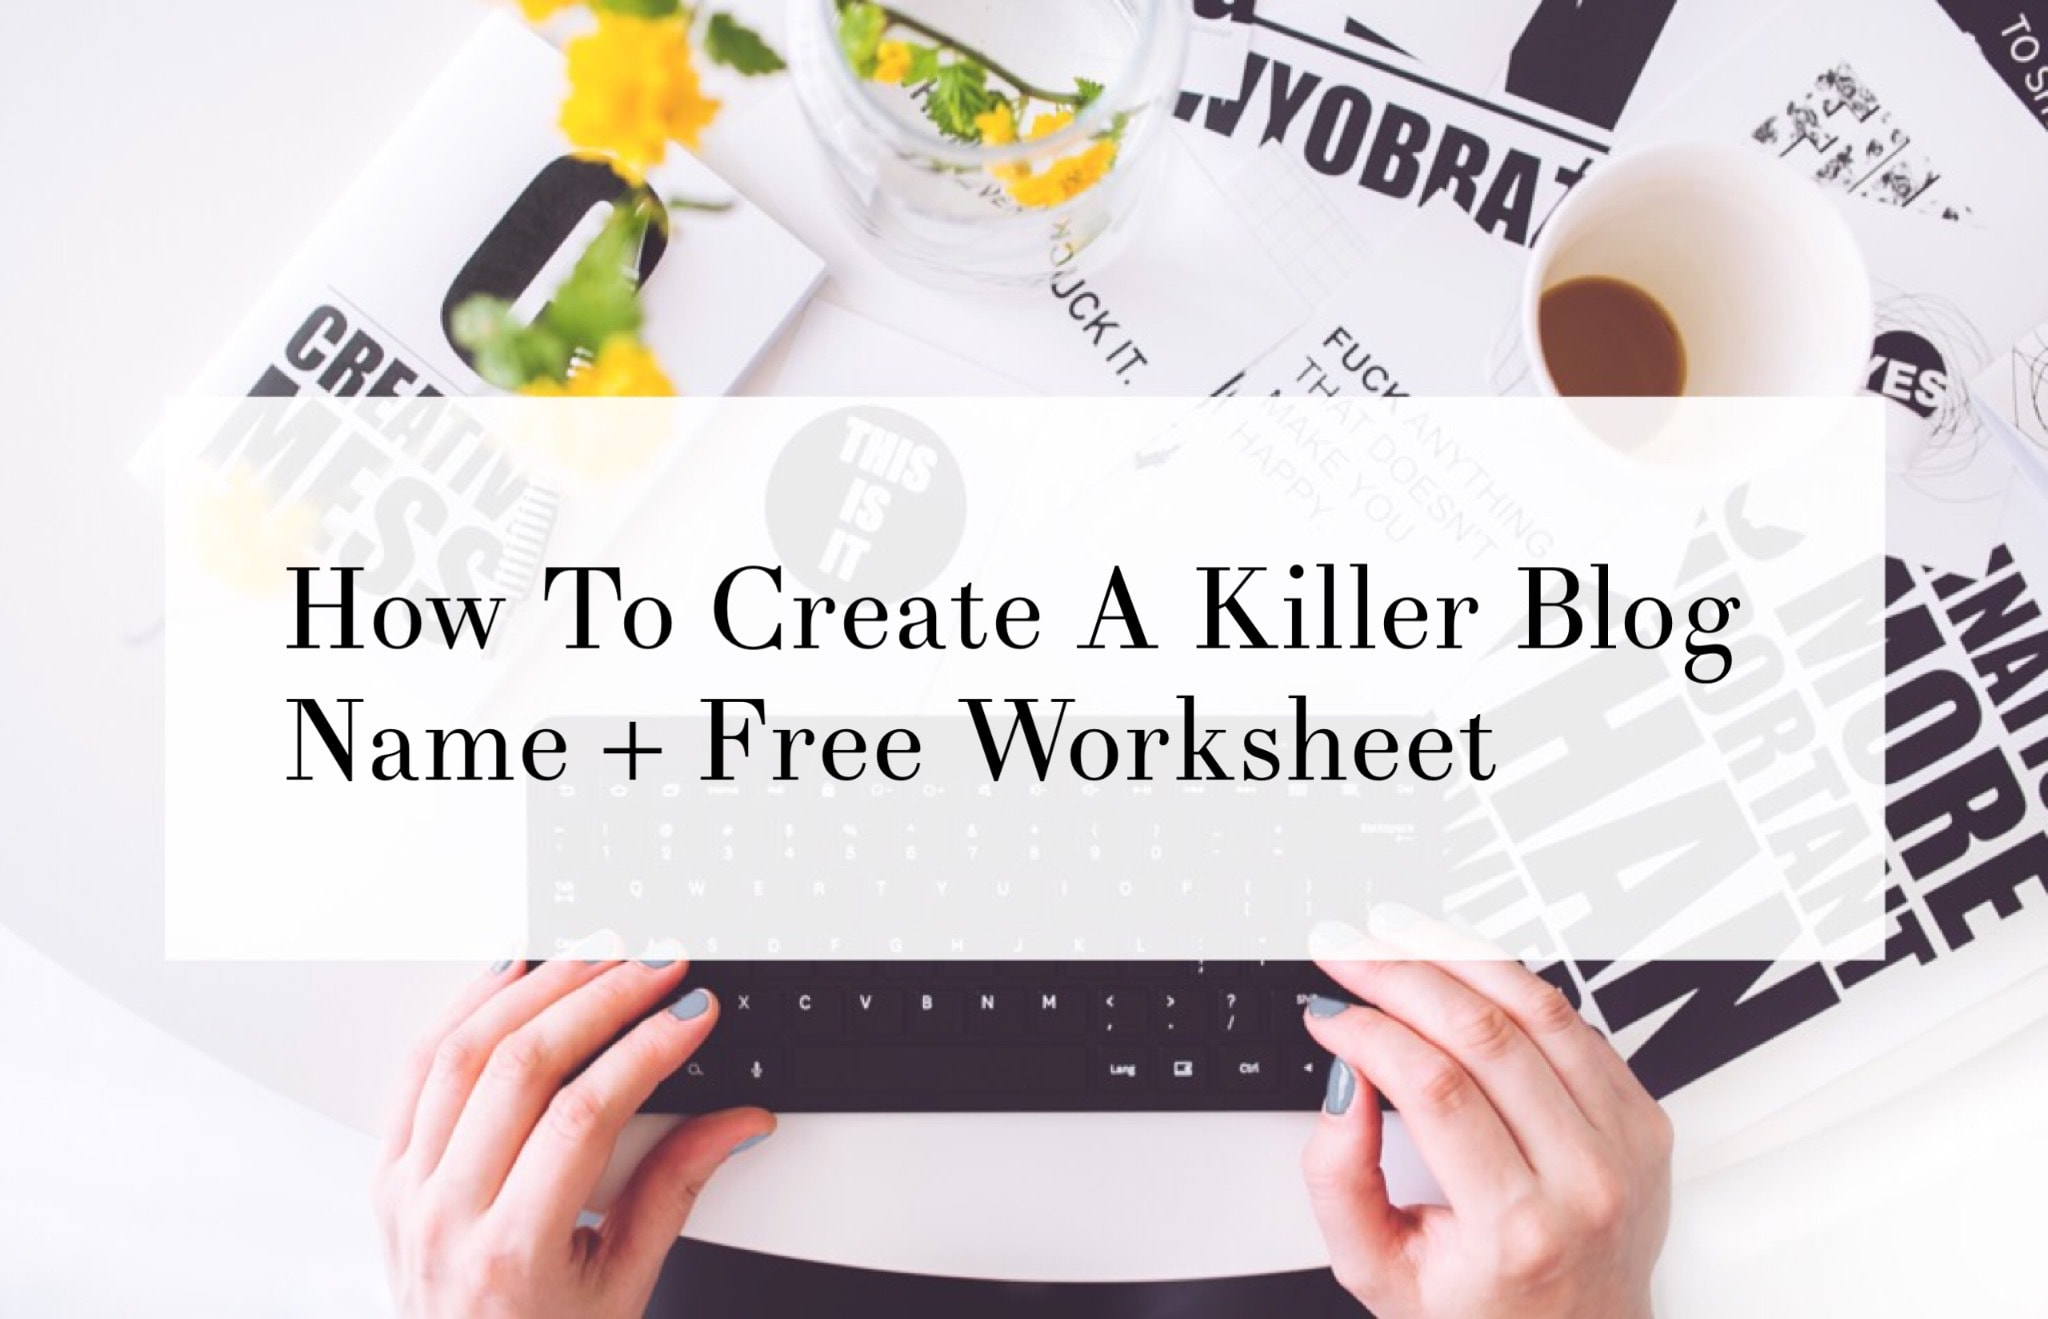 How to Create a Killer Blog Name + Free Worksheet!